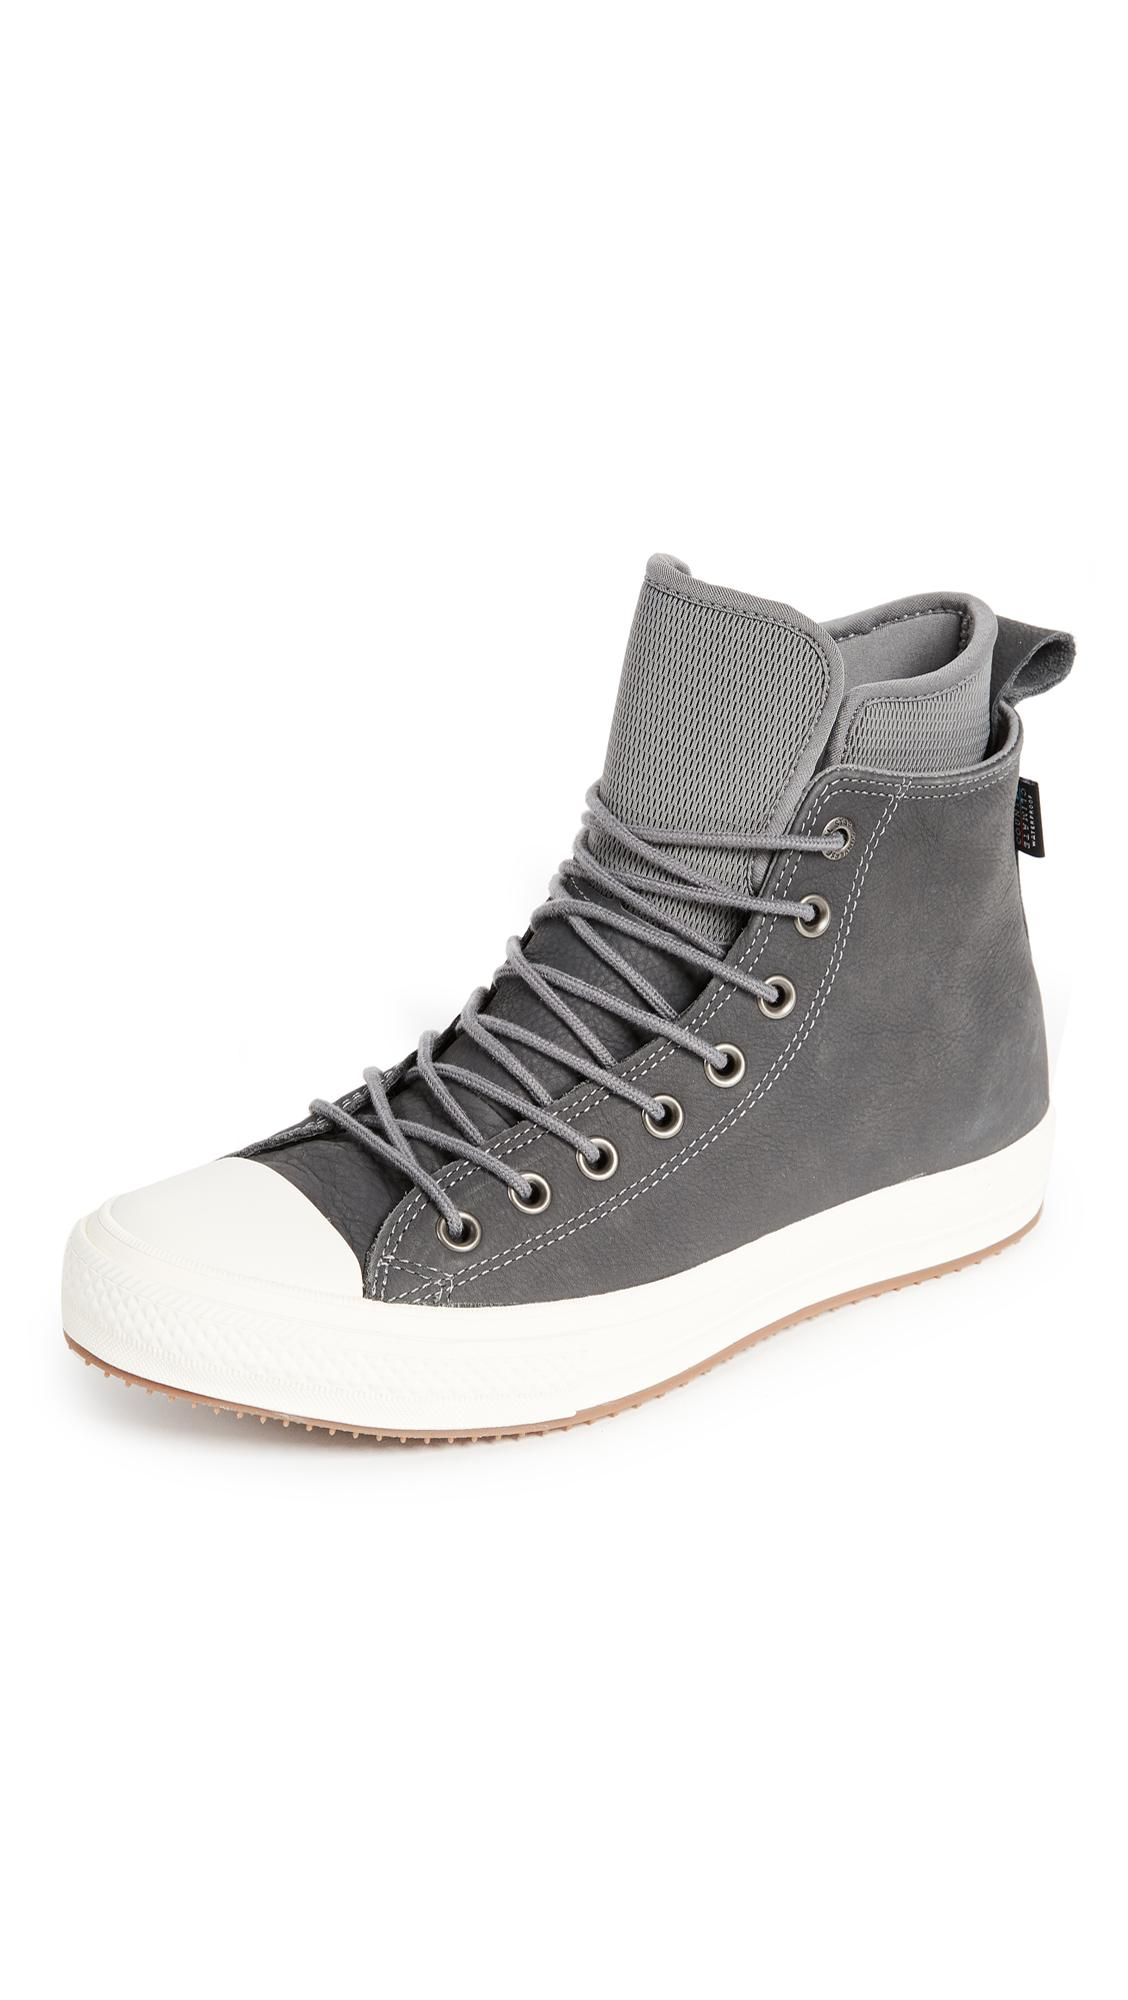 sale retailer 465e2 ffa00 Converse Men s Chuck Taylor All Star Waterproof Boot Nubuck Hi Casual  Sneakers From Finish Line In